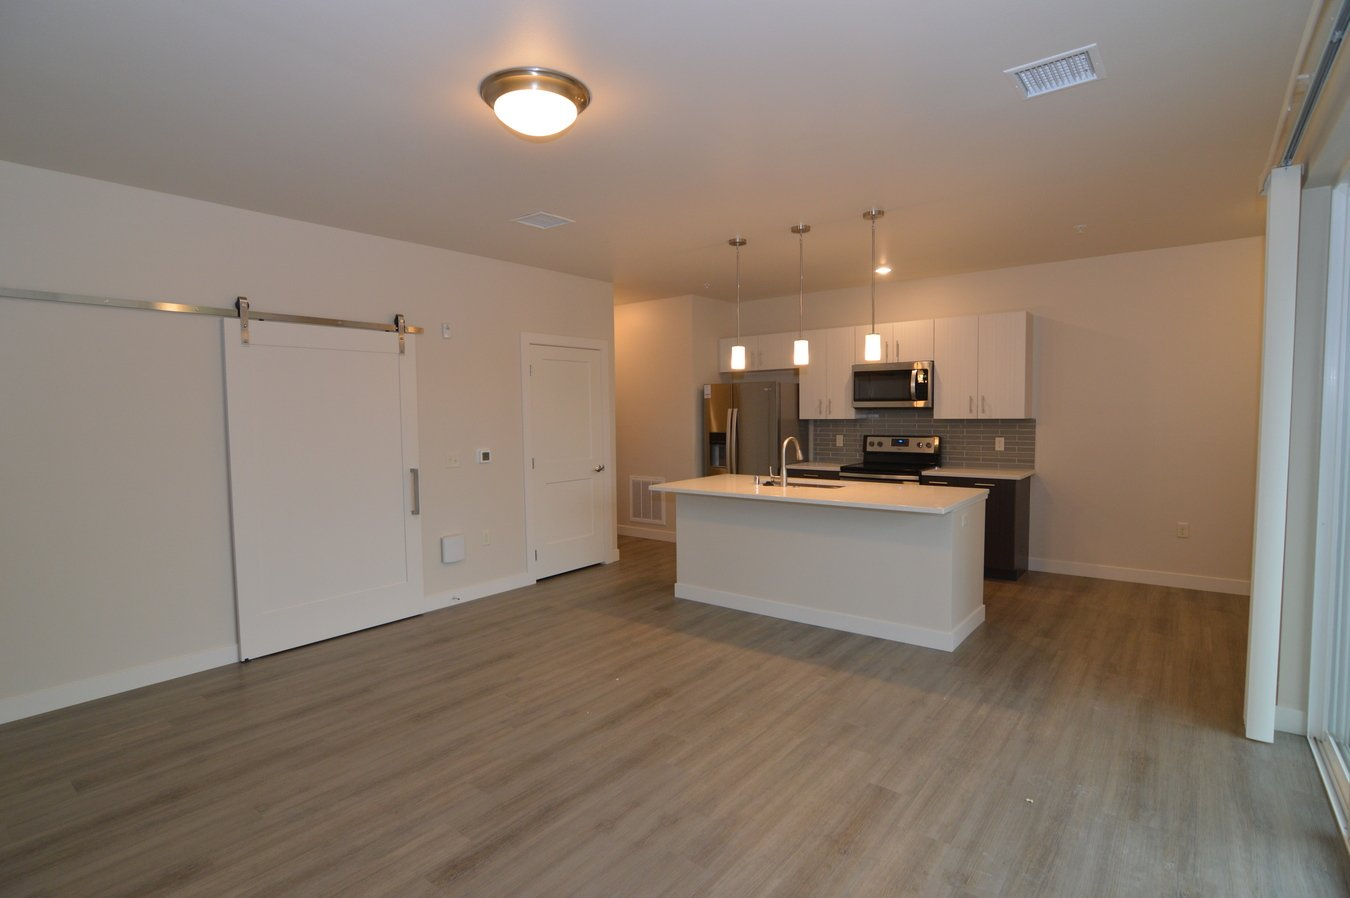 1 Bedroom 1 Bathroom Apartment for rent at Oakland On Monroe in Madison, WI